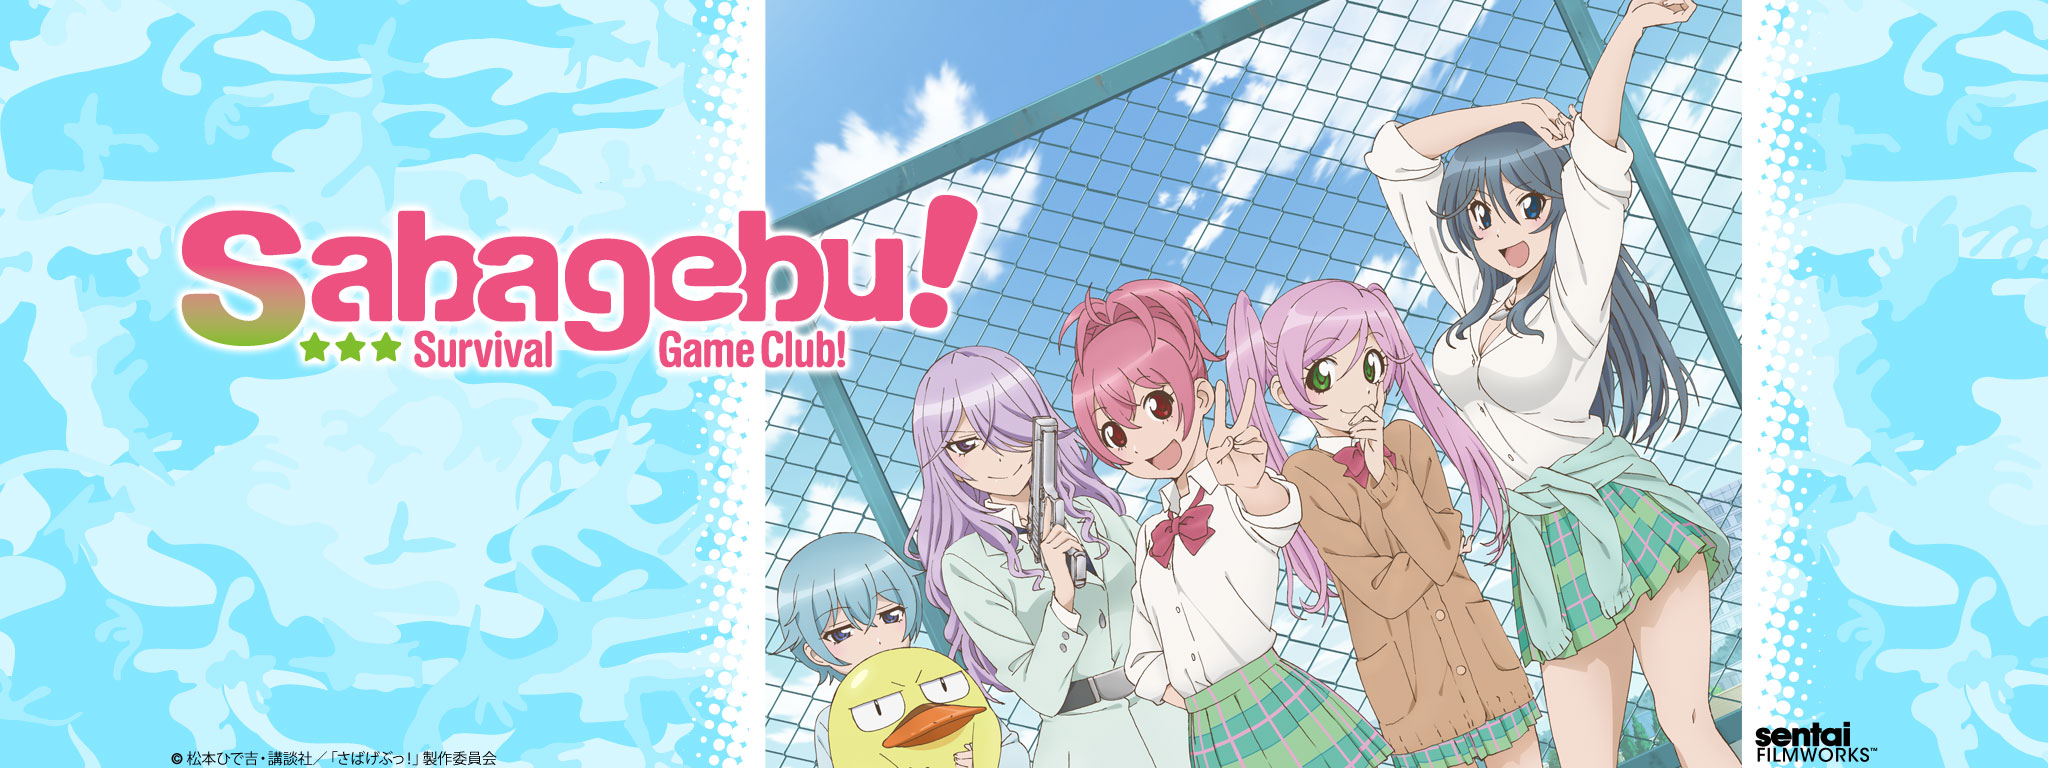 Sabagebu! Survival Game Club